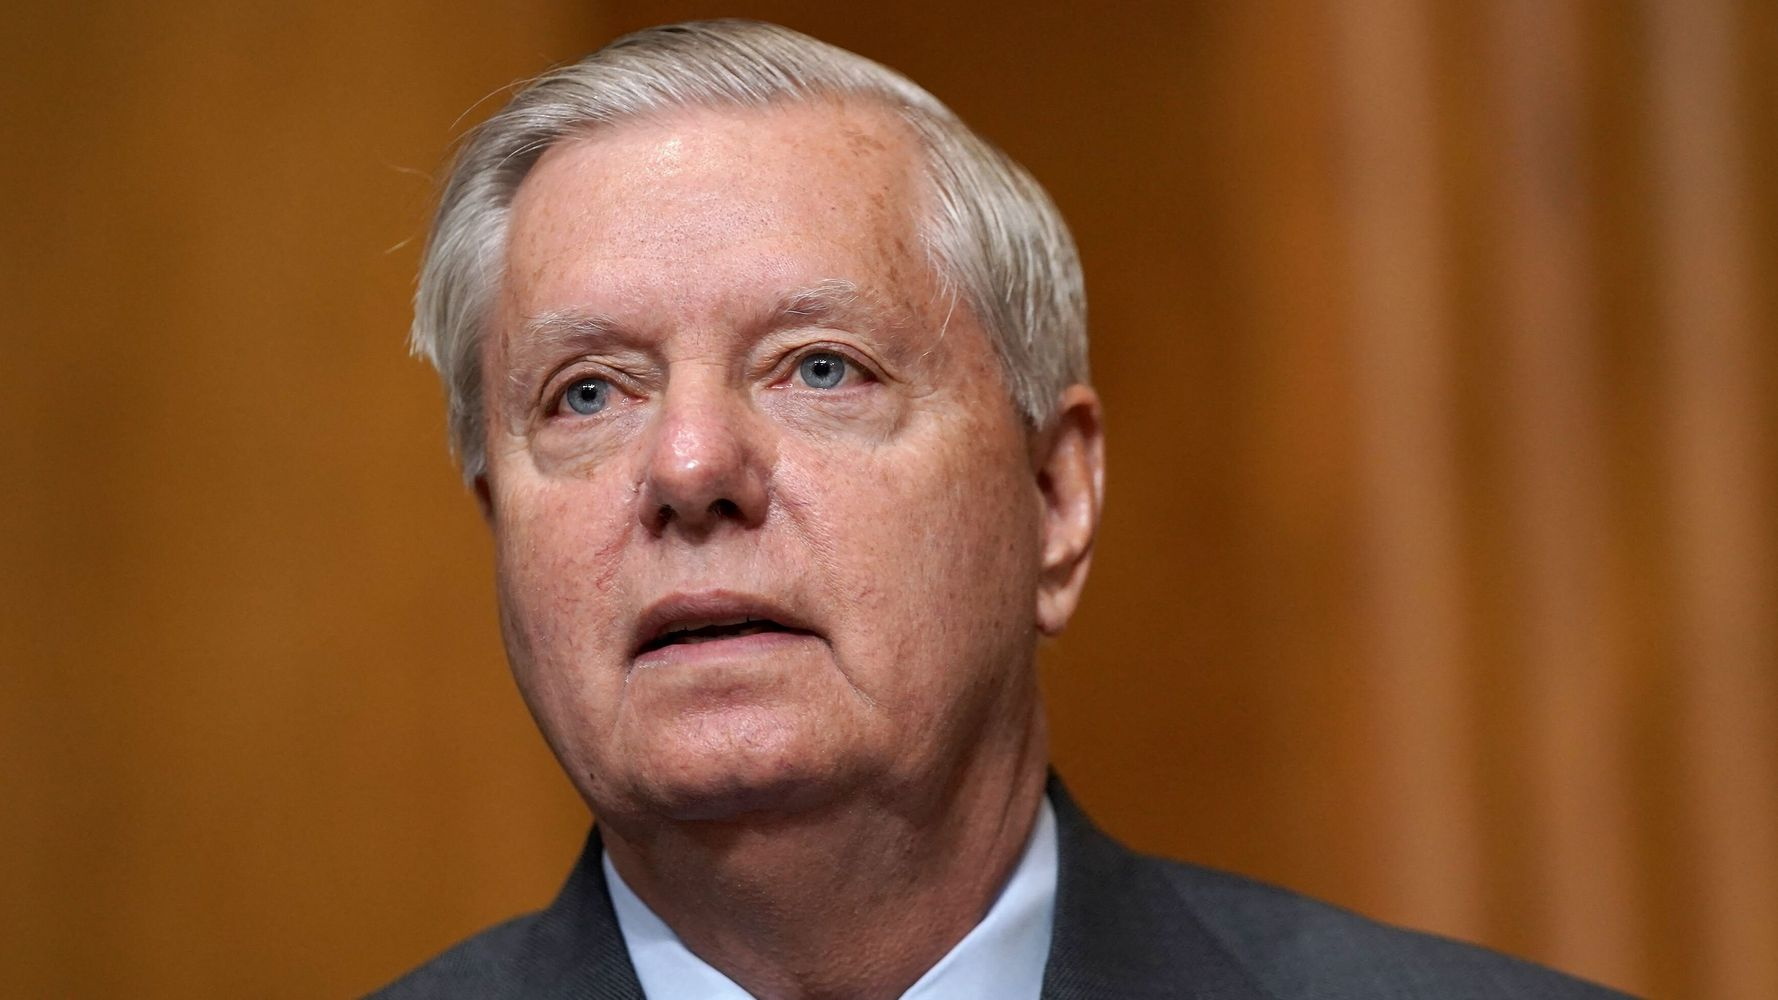 'Get A Grip': Lindsey Graham Smoked For Declaring He'd Go To Battle For Chick-Fil-A